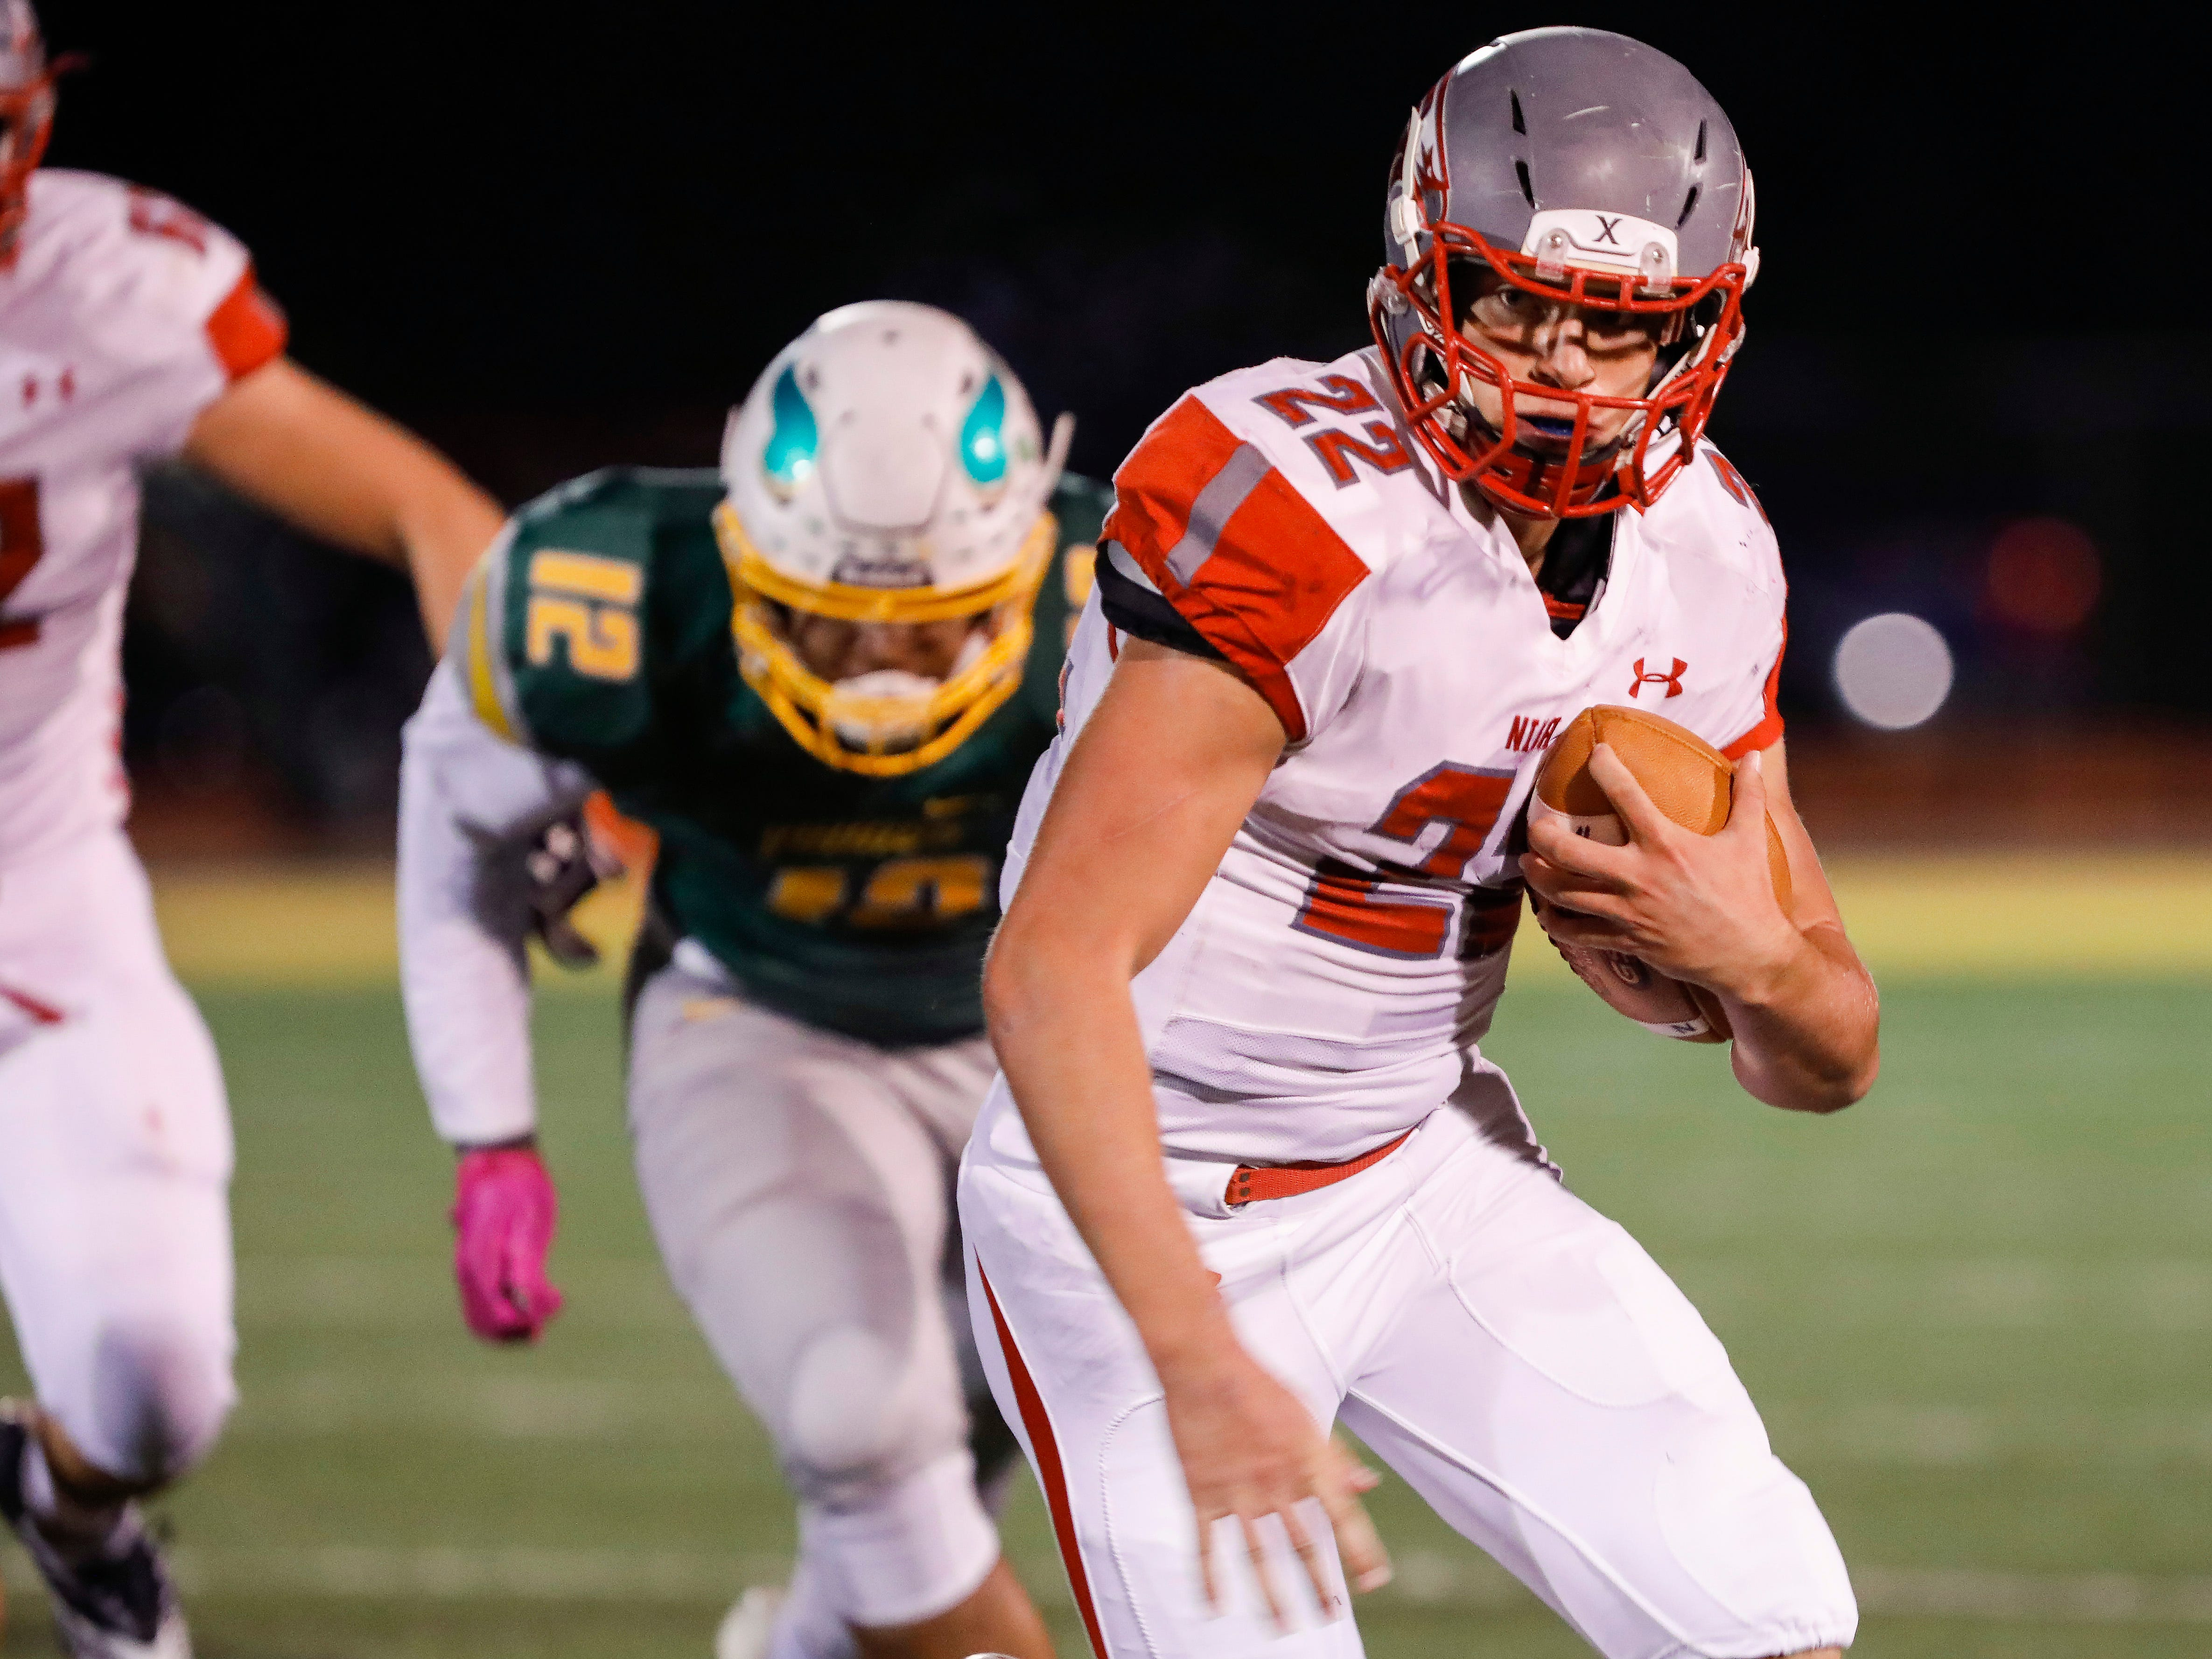 The Parkview Vikings defeated the Nixa Eagles 42-41 in overtime at JFK Stadium on Friday, Nov. 2, 2018.